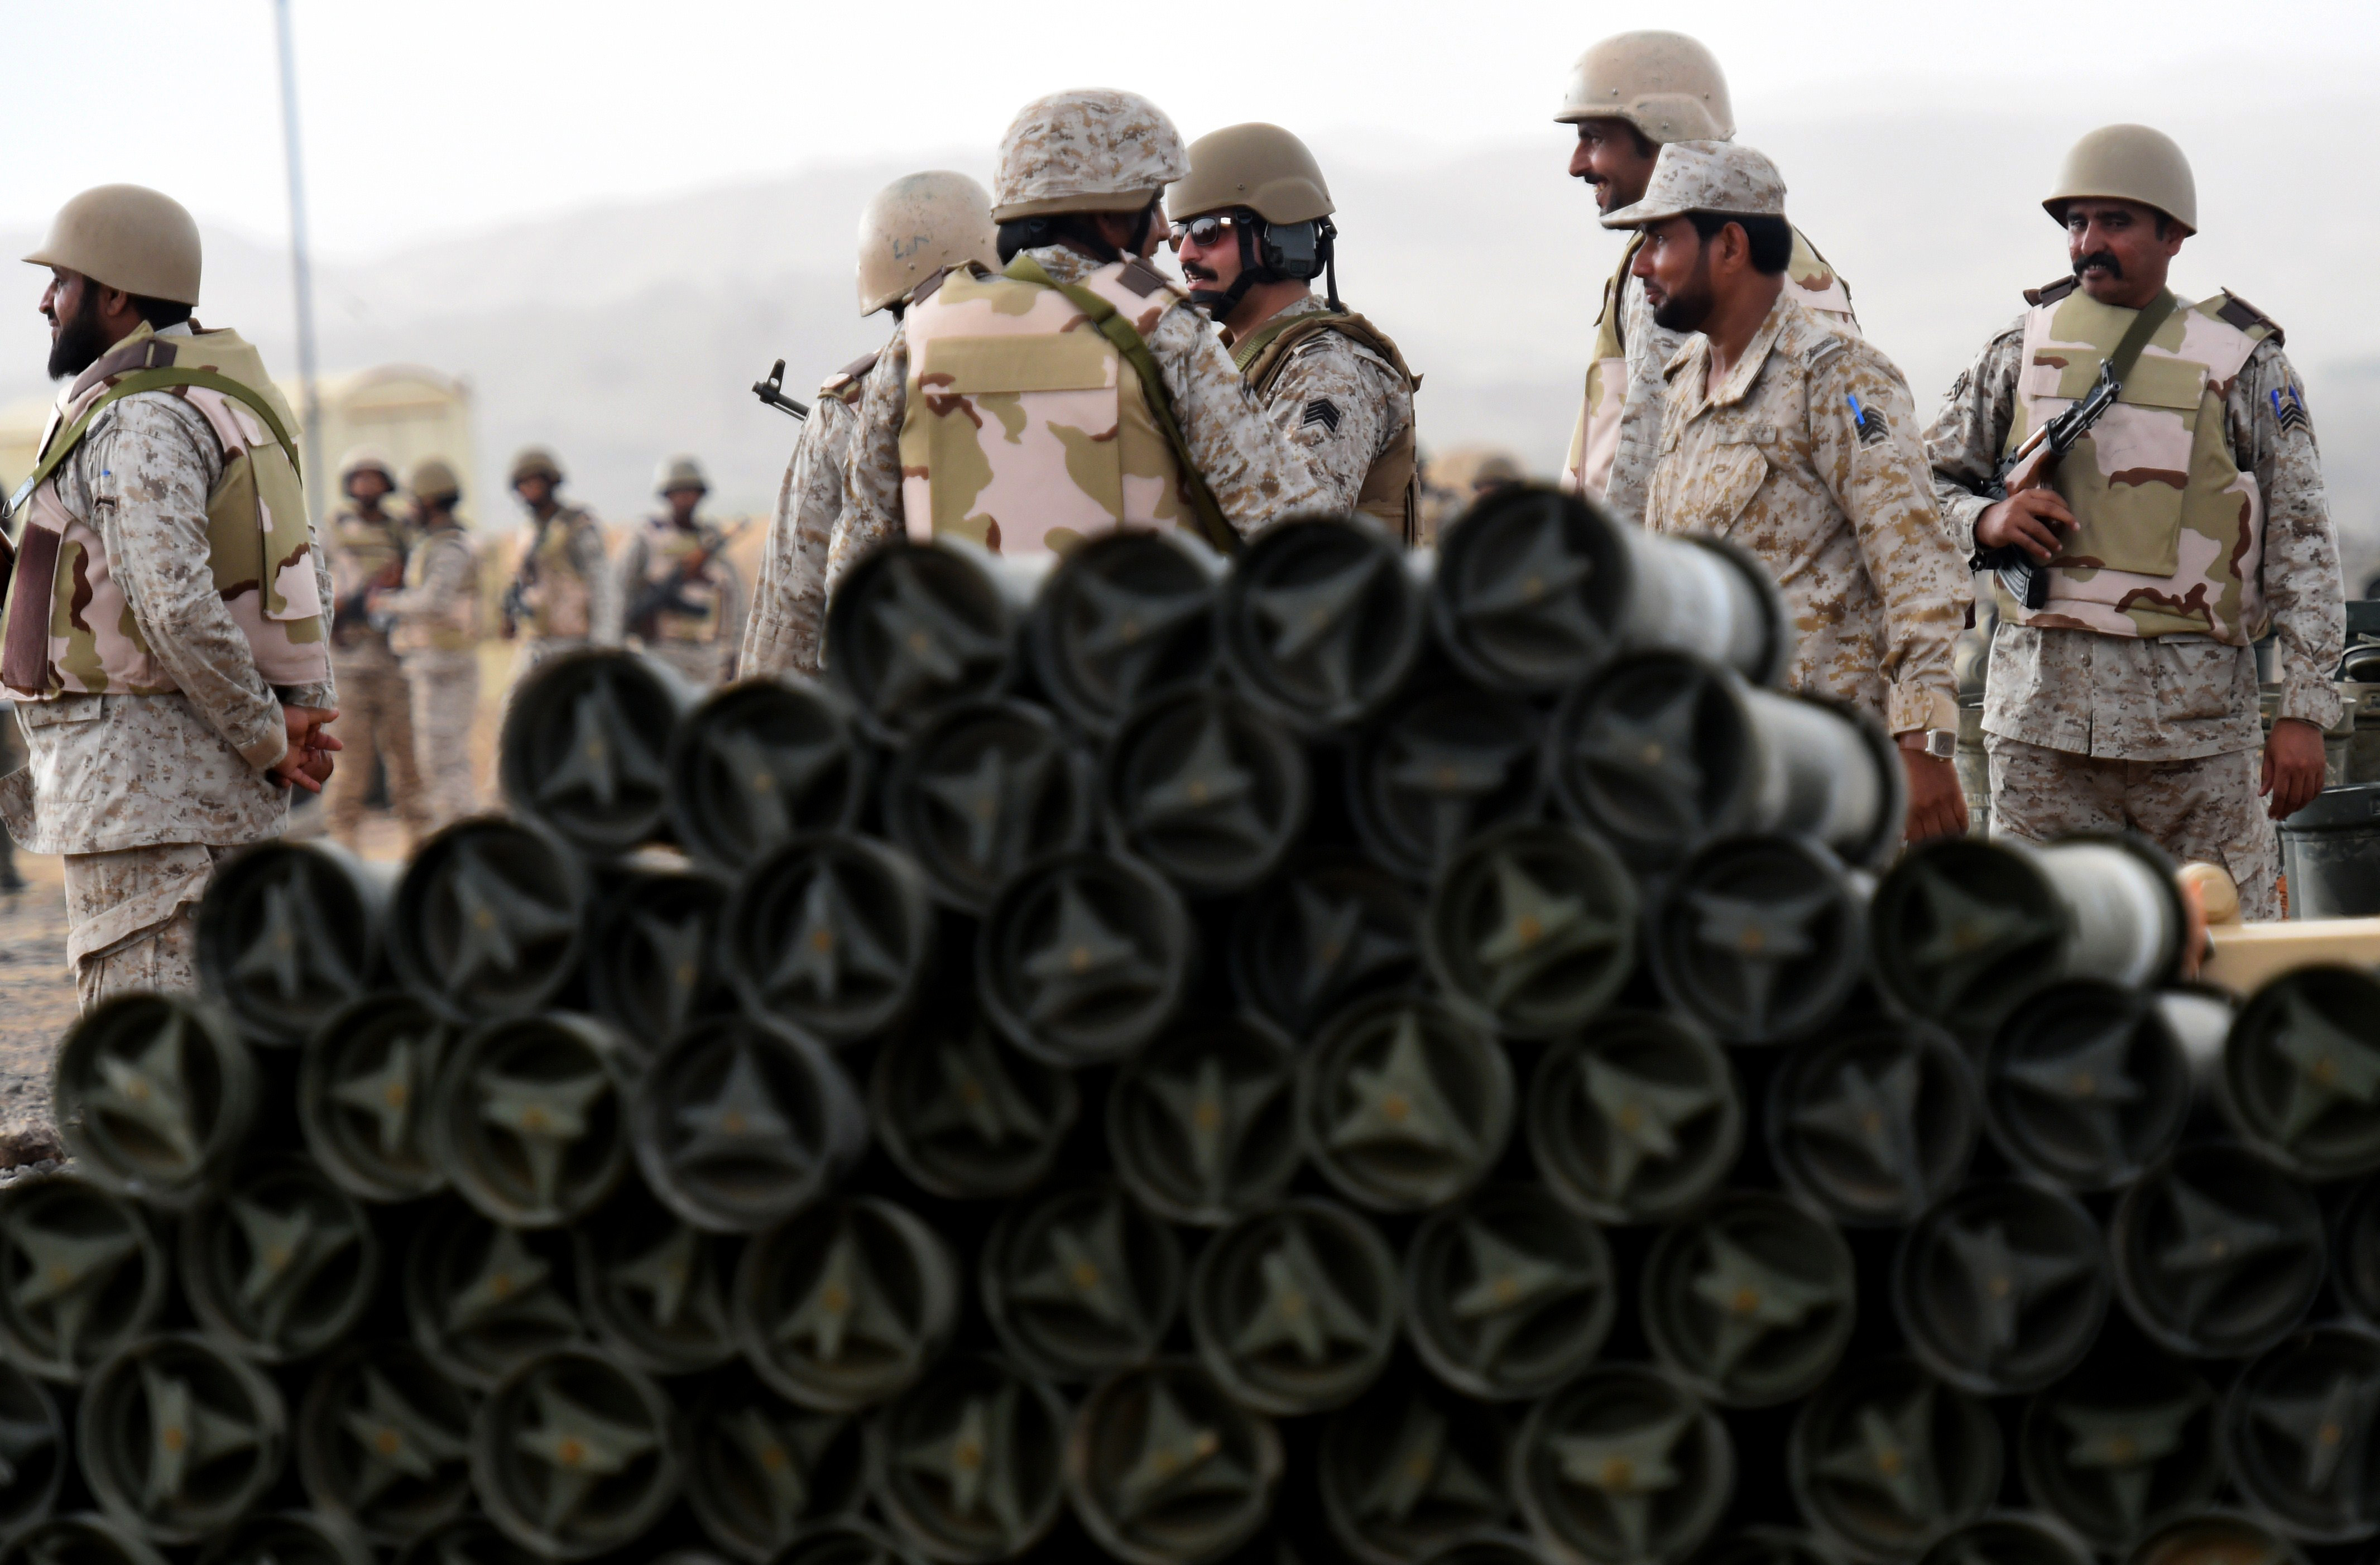 Saudi soldiers from an artillery unit stand behind a pile of ammunition at a position close to the Saudi-Yemeni border, in southwestern Saudi Arabia, on April 13, 2015. Saudi Arabia is leading a coalition of several Arab countries which since March 26 has carried out air strikes against the Shiite Huthis rebels, who overran the capital Sanaa in September and have expanded to other parts of Yemen. AFP PHOTO / FAYEZ NURELDINE        (Photo credit should read FAYEZ NURELDINE/AFP/Getty Images)